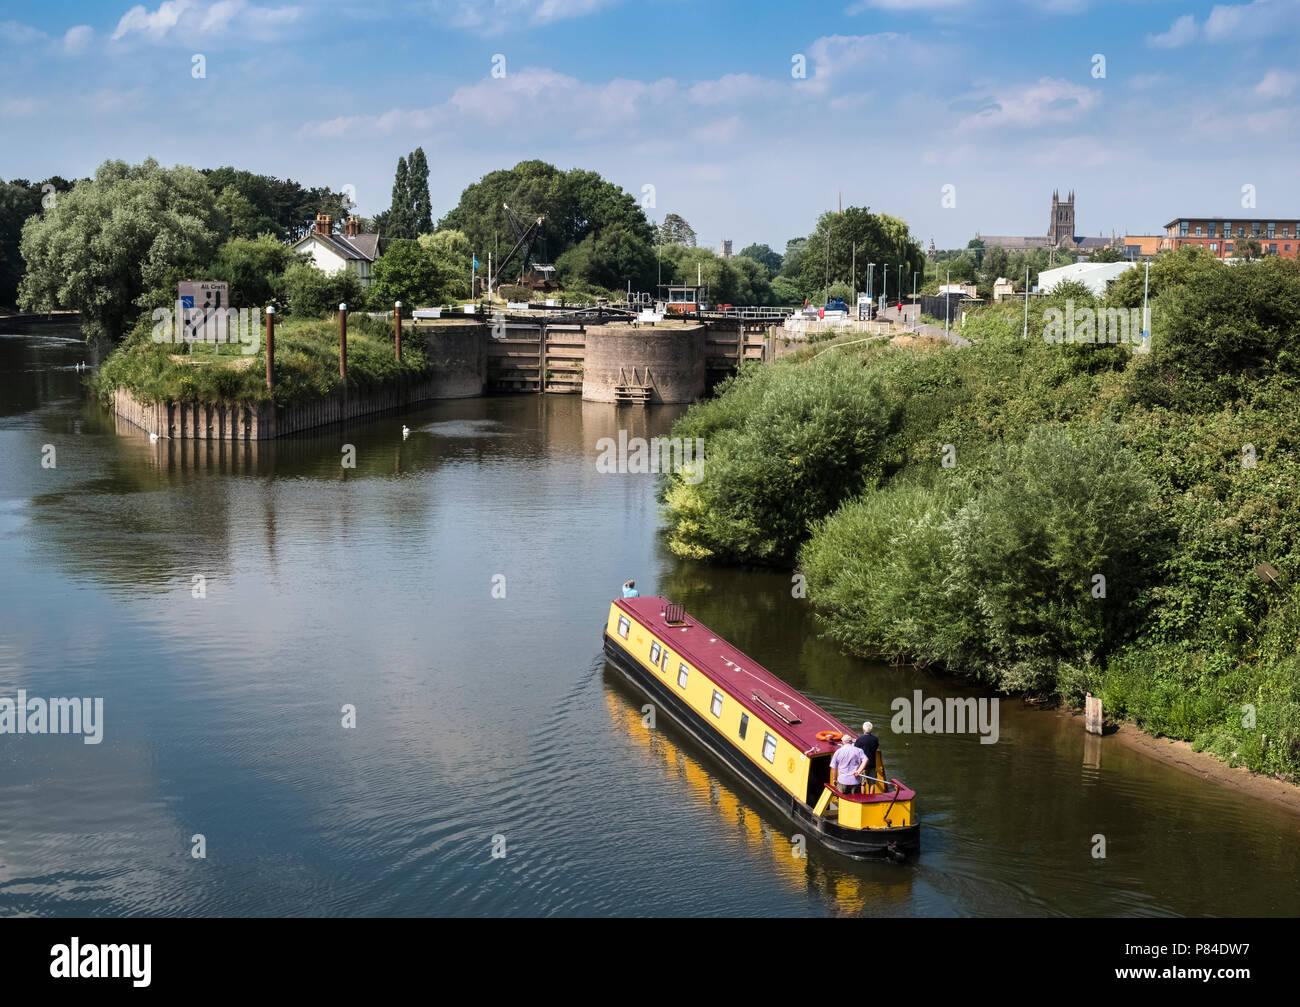 A river barge approaching Diglis River Lock, part of the River Severn Worcester - Birmingham Canal, Worcester, Worcestershire, UK - Stock Image